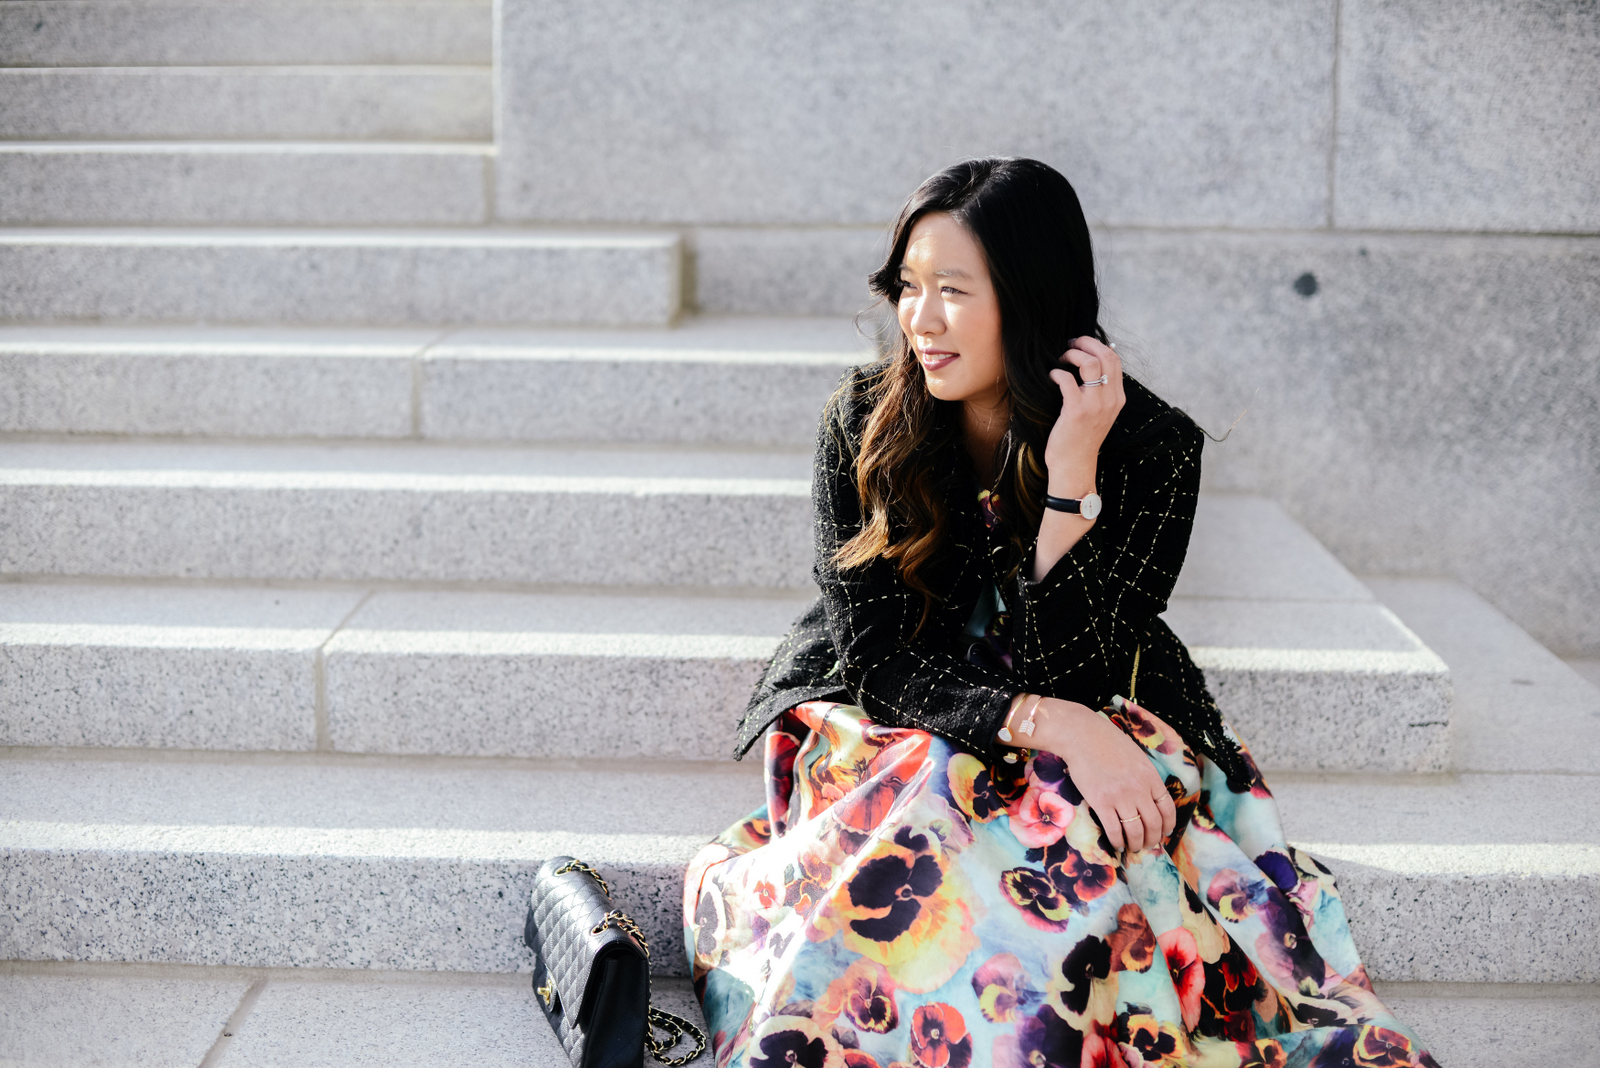 Fashion blogger outfit from Trolley Square